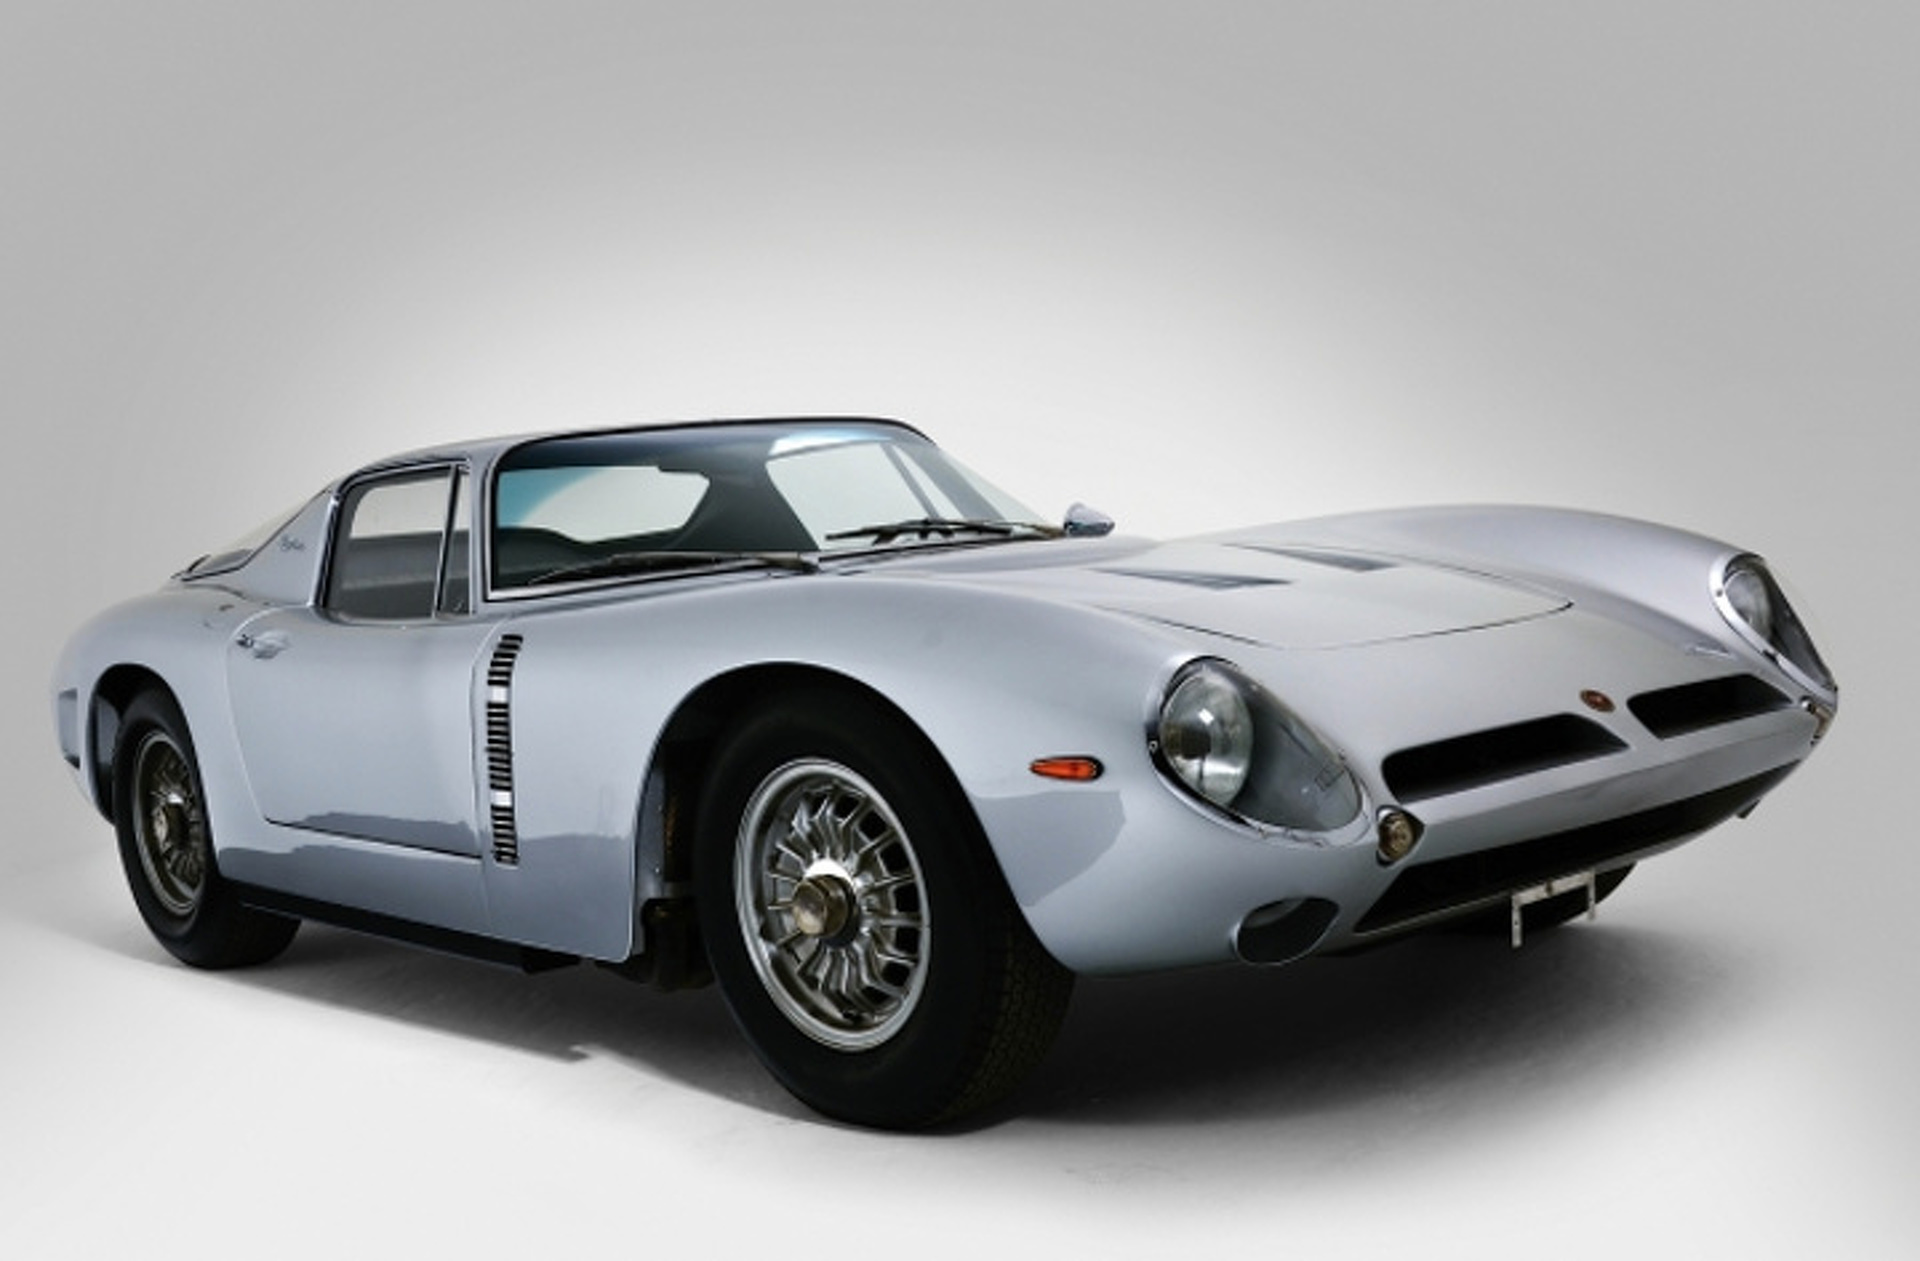 Giotto Bizzarrini: The Man Behind Some of Italy's Greatest Cars